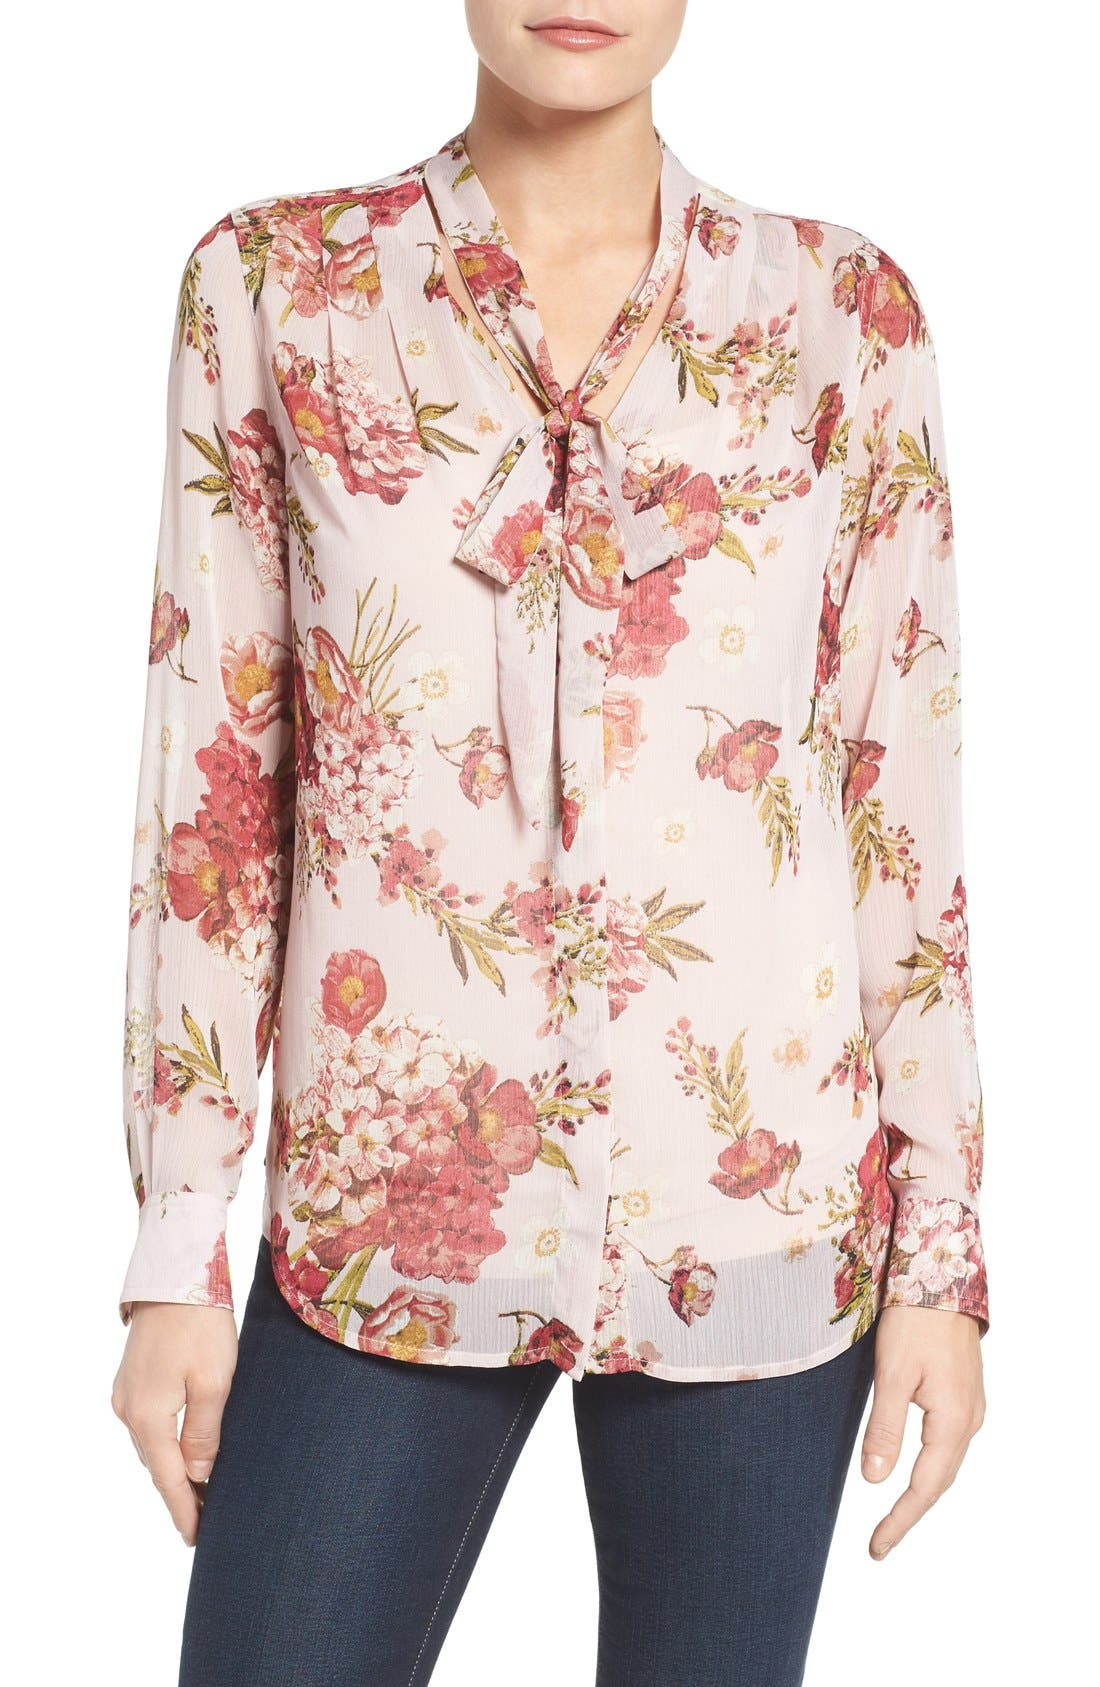 Alternate Image 1 Selected - KUT from the Kloth Amelie Tie Neck Floral Blouse